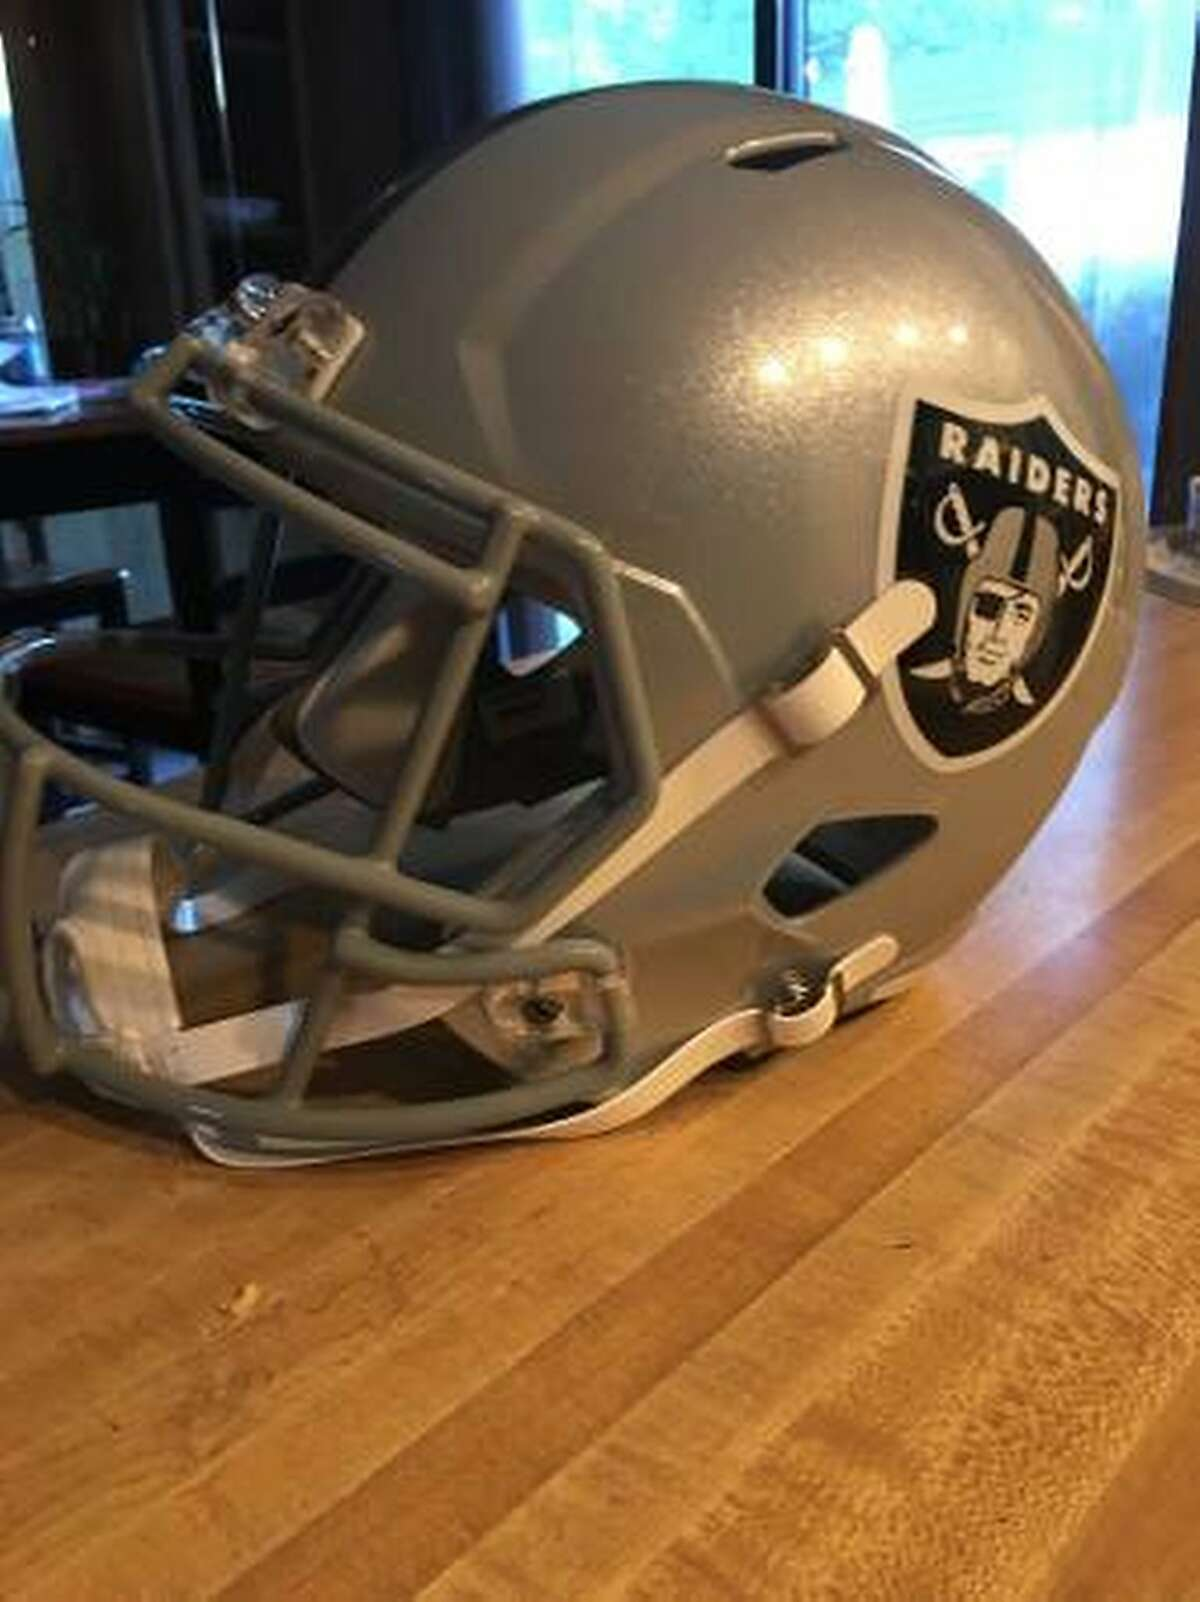 A Raiders fan has vowed on Craigslist to burn his team gear, including this Riddell helmet, this weekend unless it is sold beforehand.